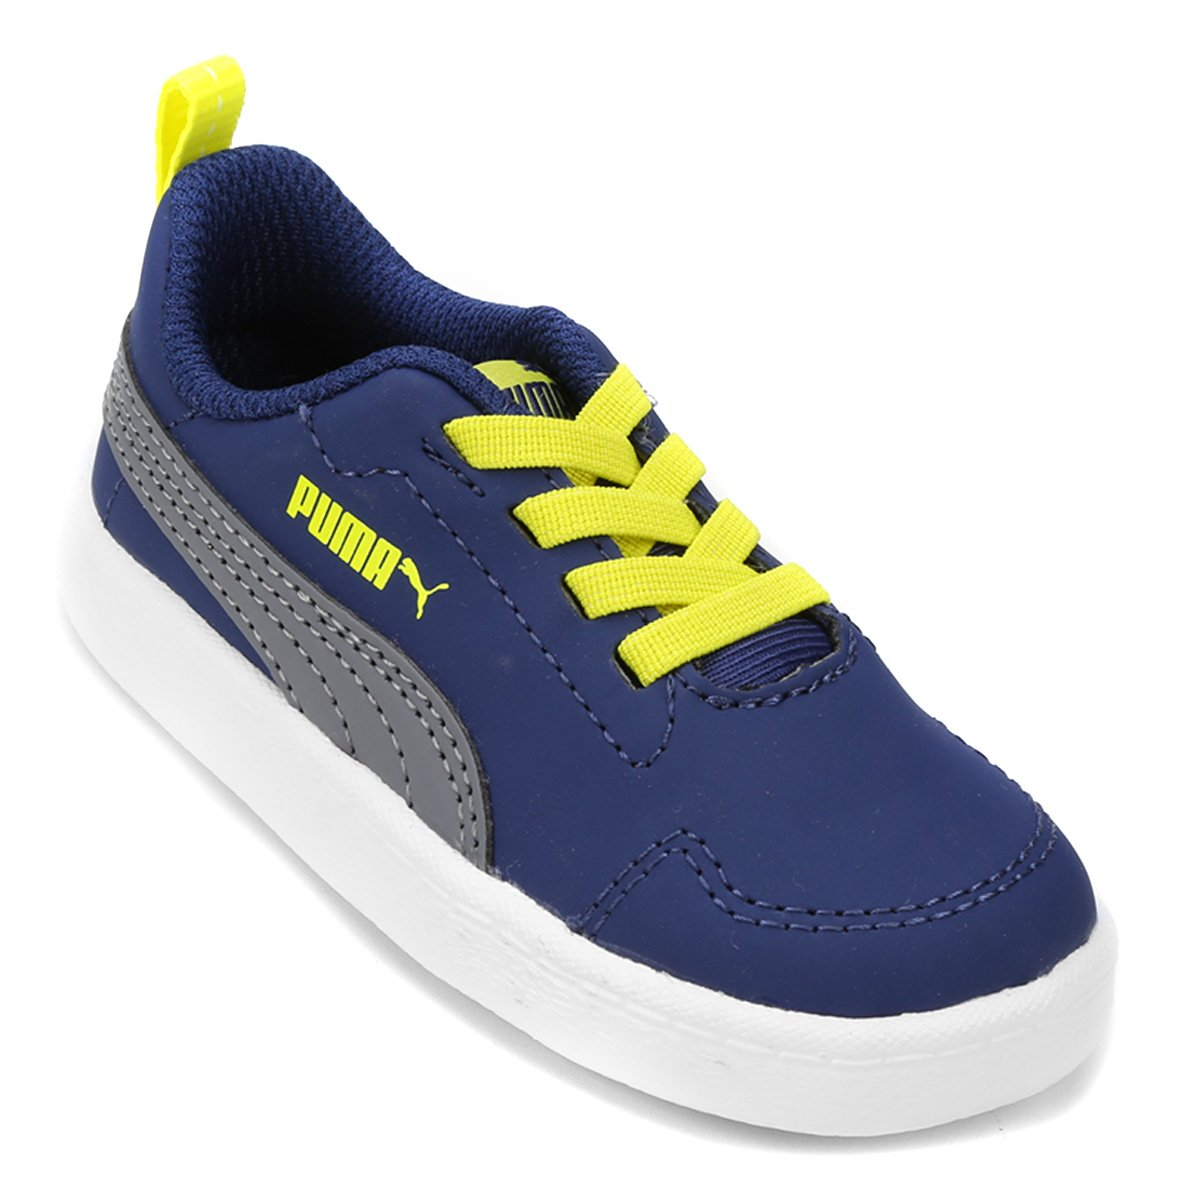 84be921f62b 60%OFF Tênis Infantil Puma Courtflex I